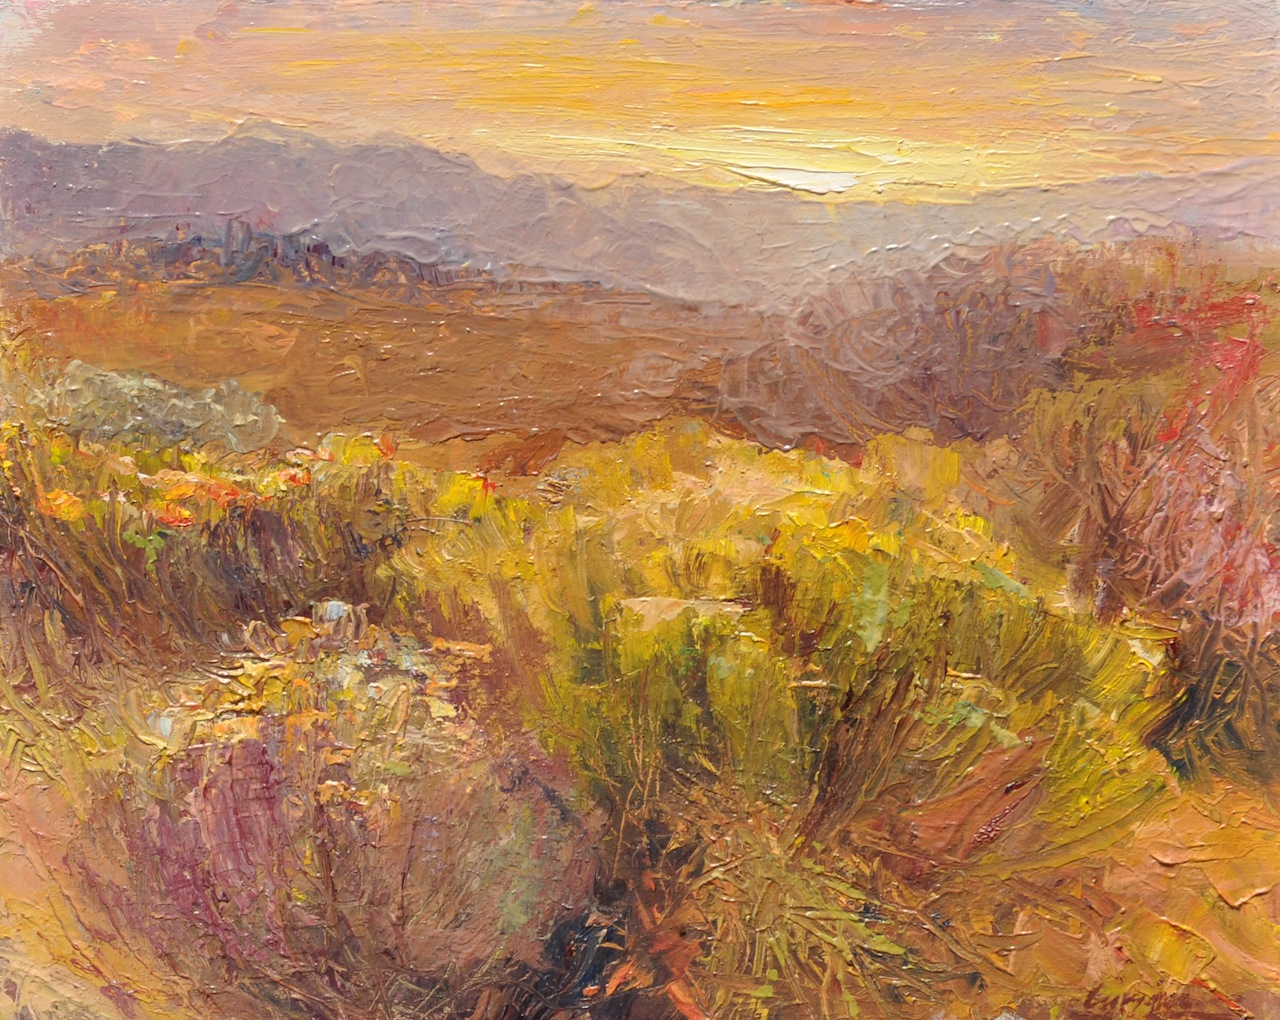 Desert Sunset, oil, 8x10